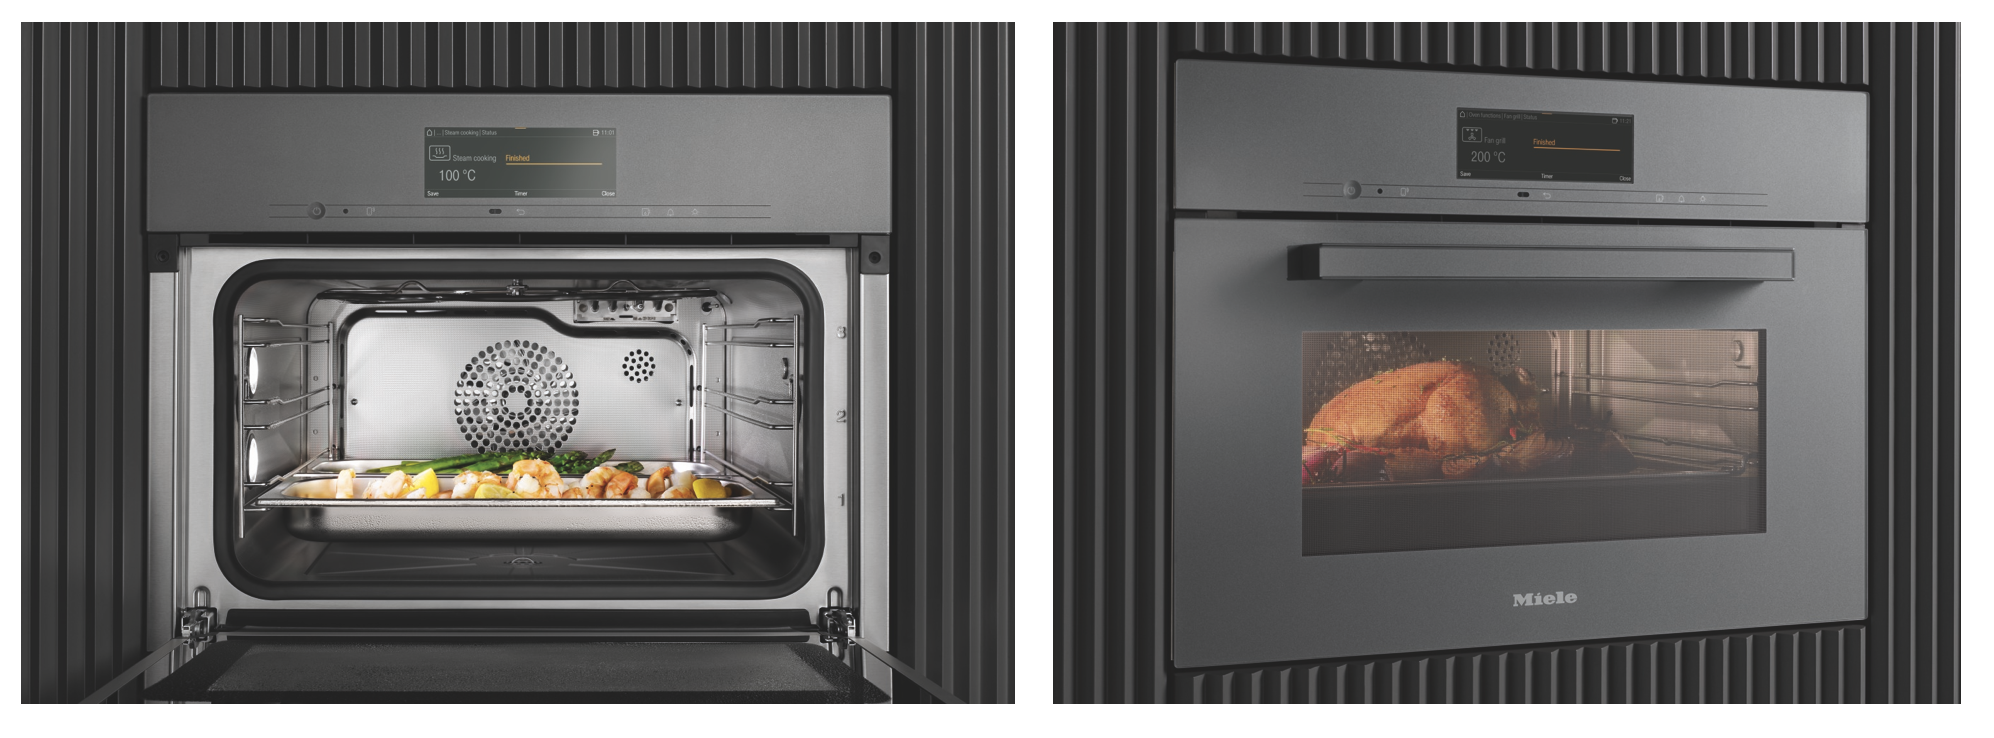 Generation 7000 Steam Ovens